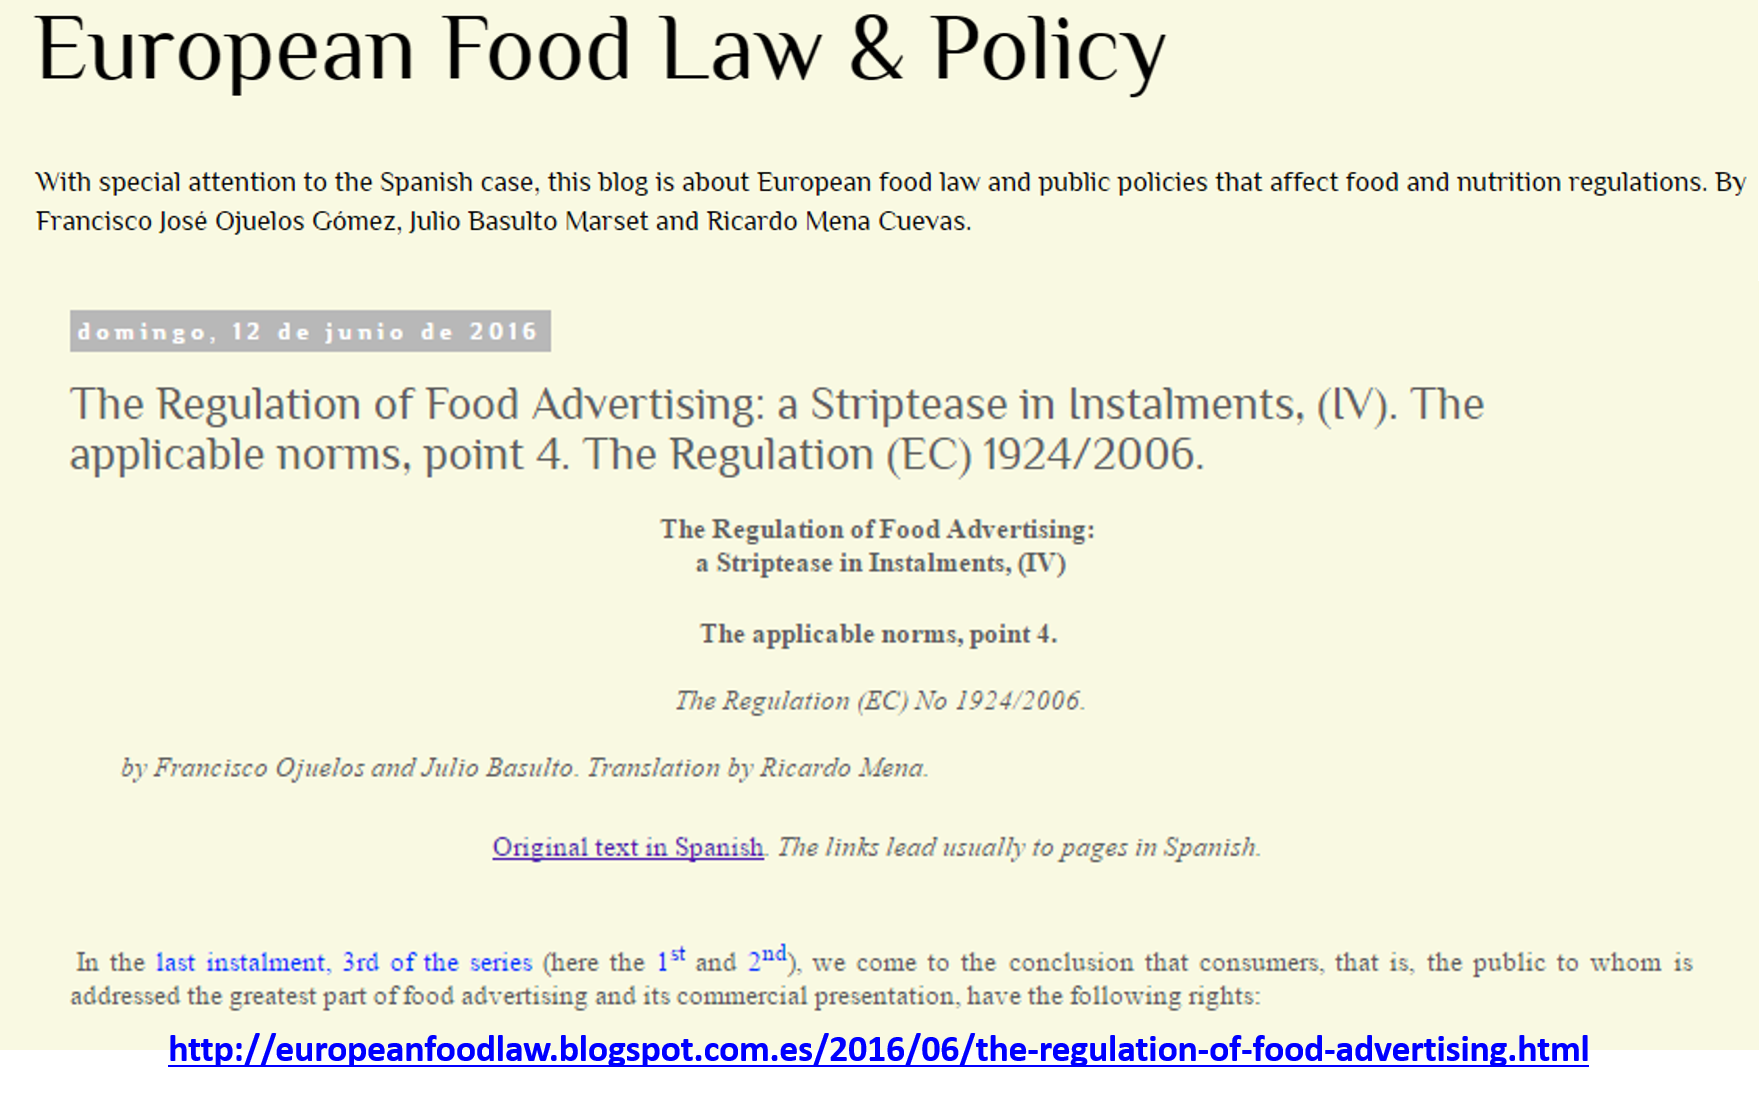 The Regulation of Food Advertising: a Striptease in Instalments, (IV). The applicable norms, point 4. The Regulation (EC) 1924/2006.